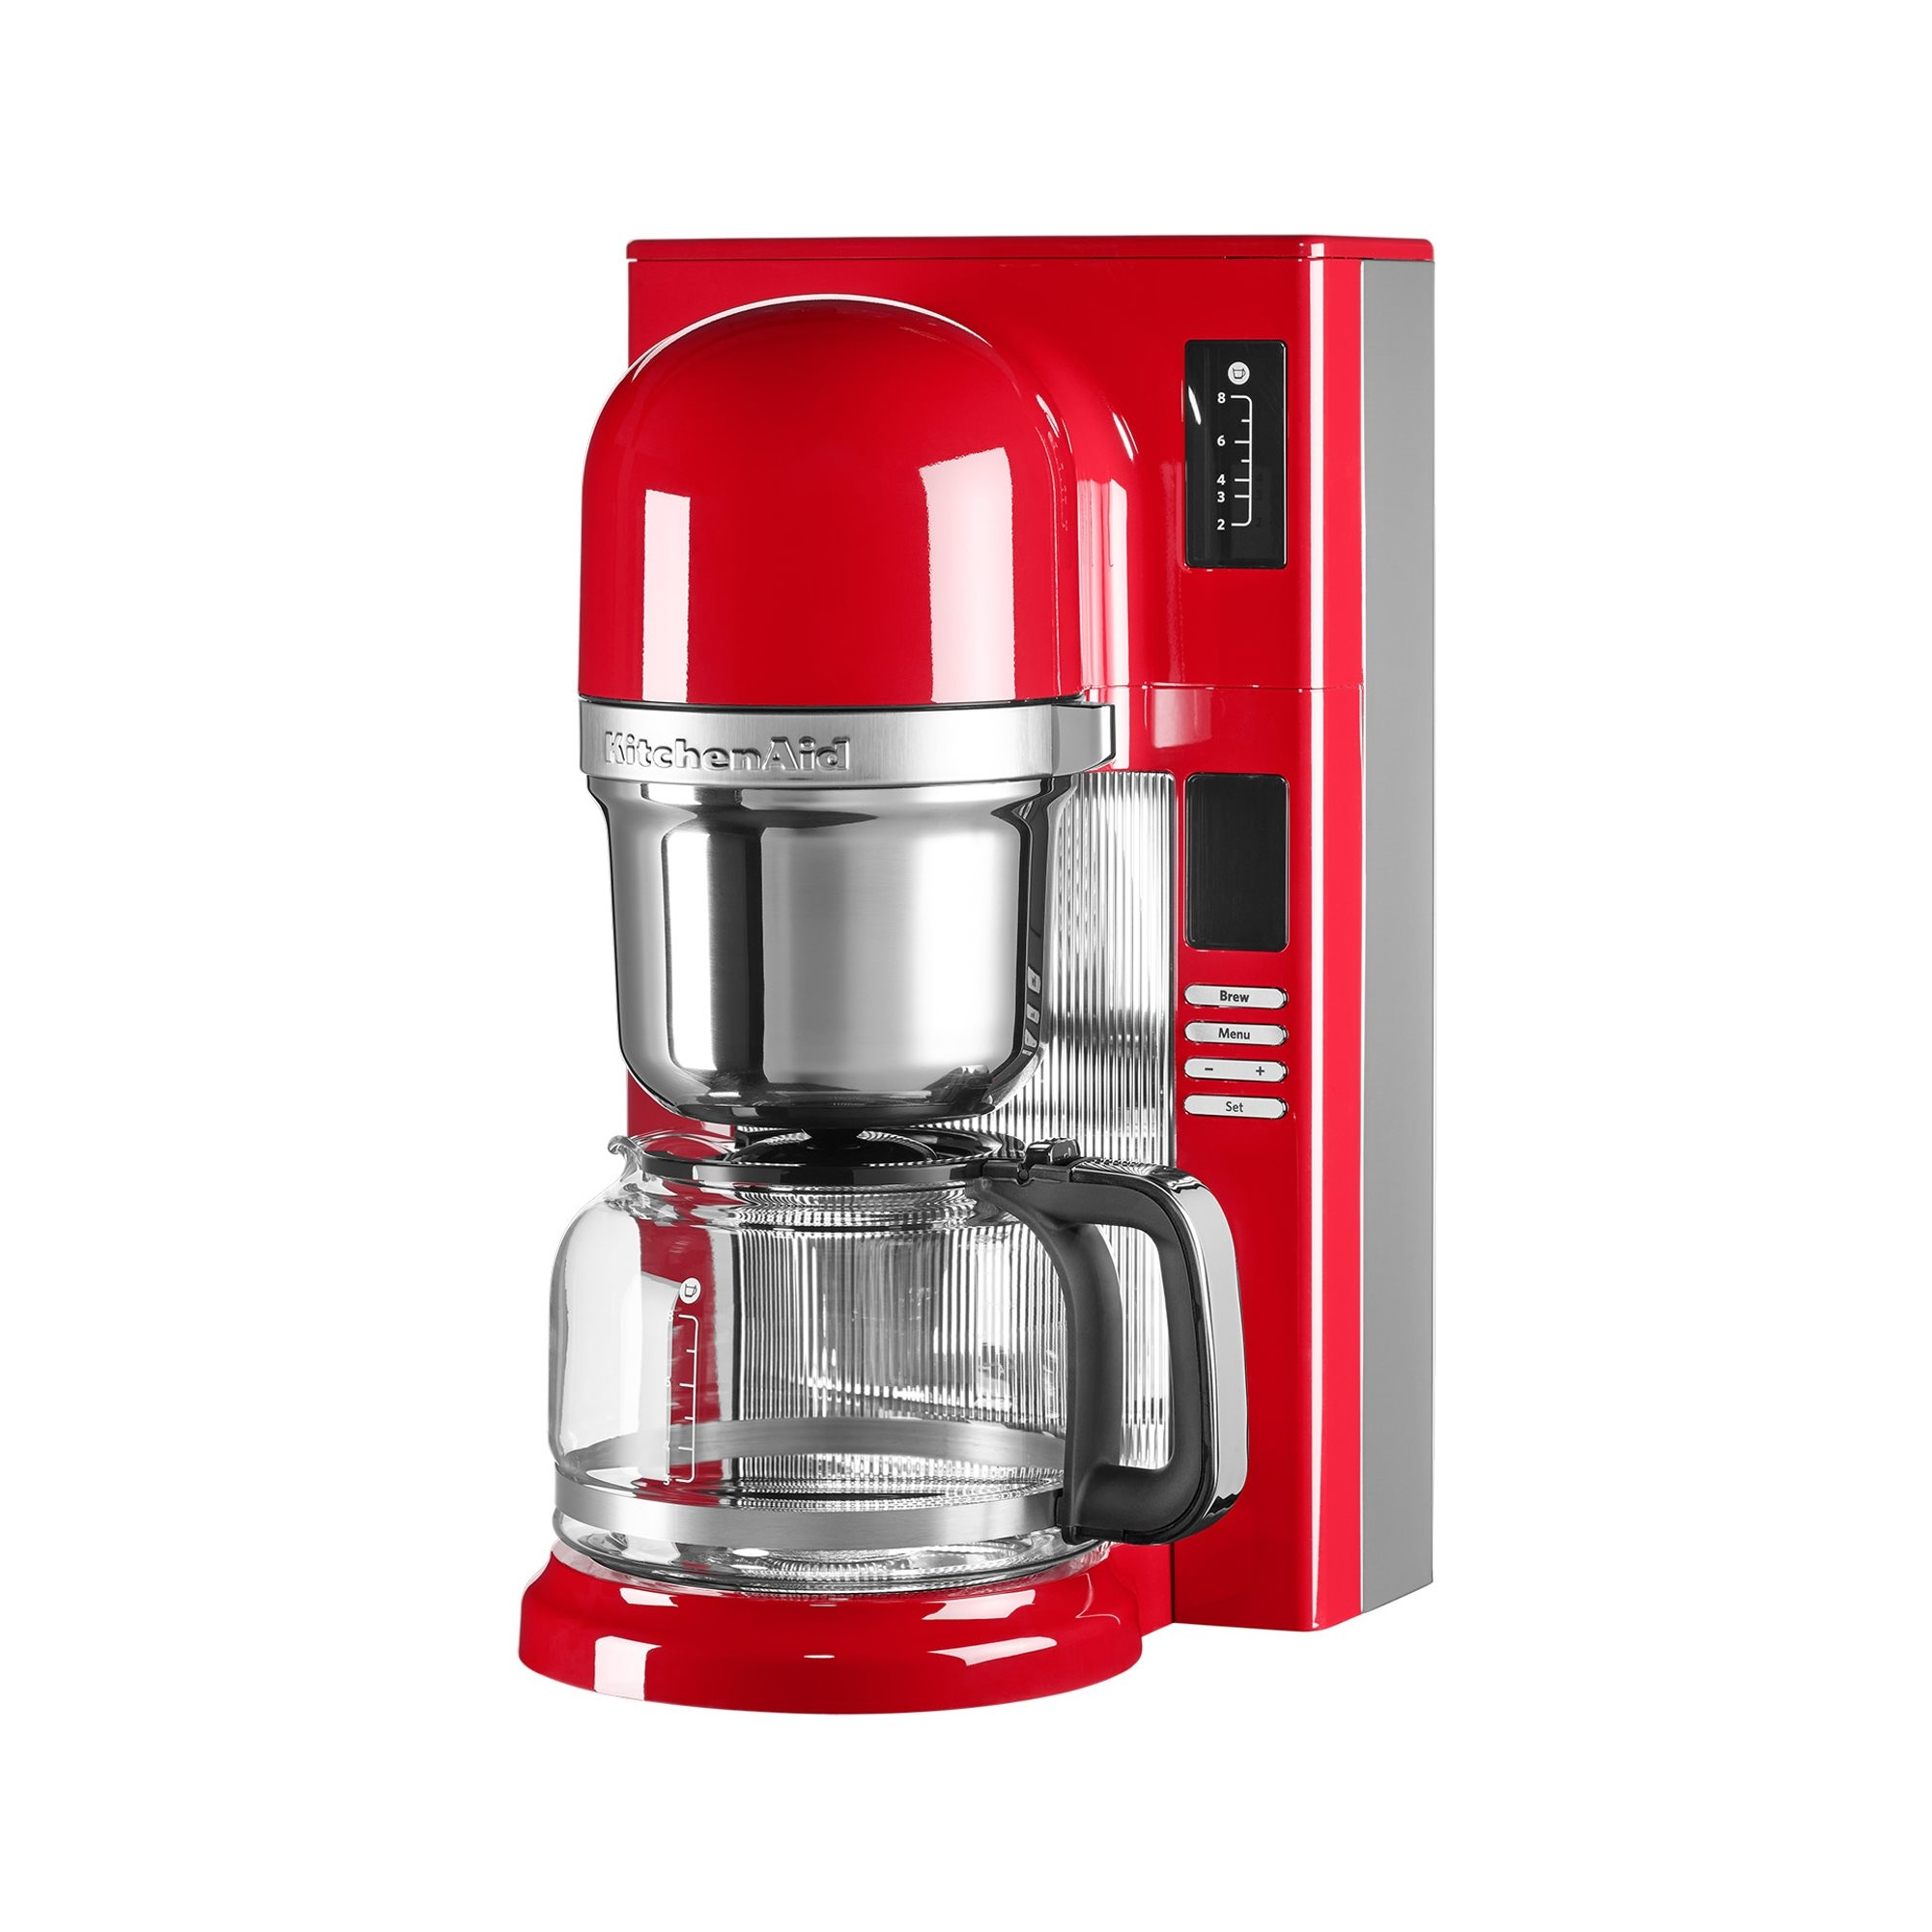 Cafetiera programabila 5KCM0802E, 1,2 L, 1250W, KitchenAid imagine